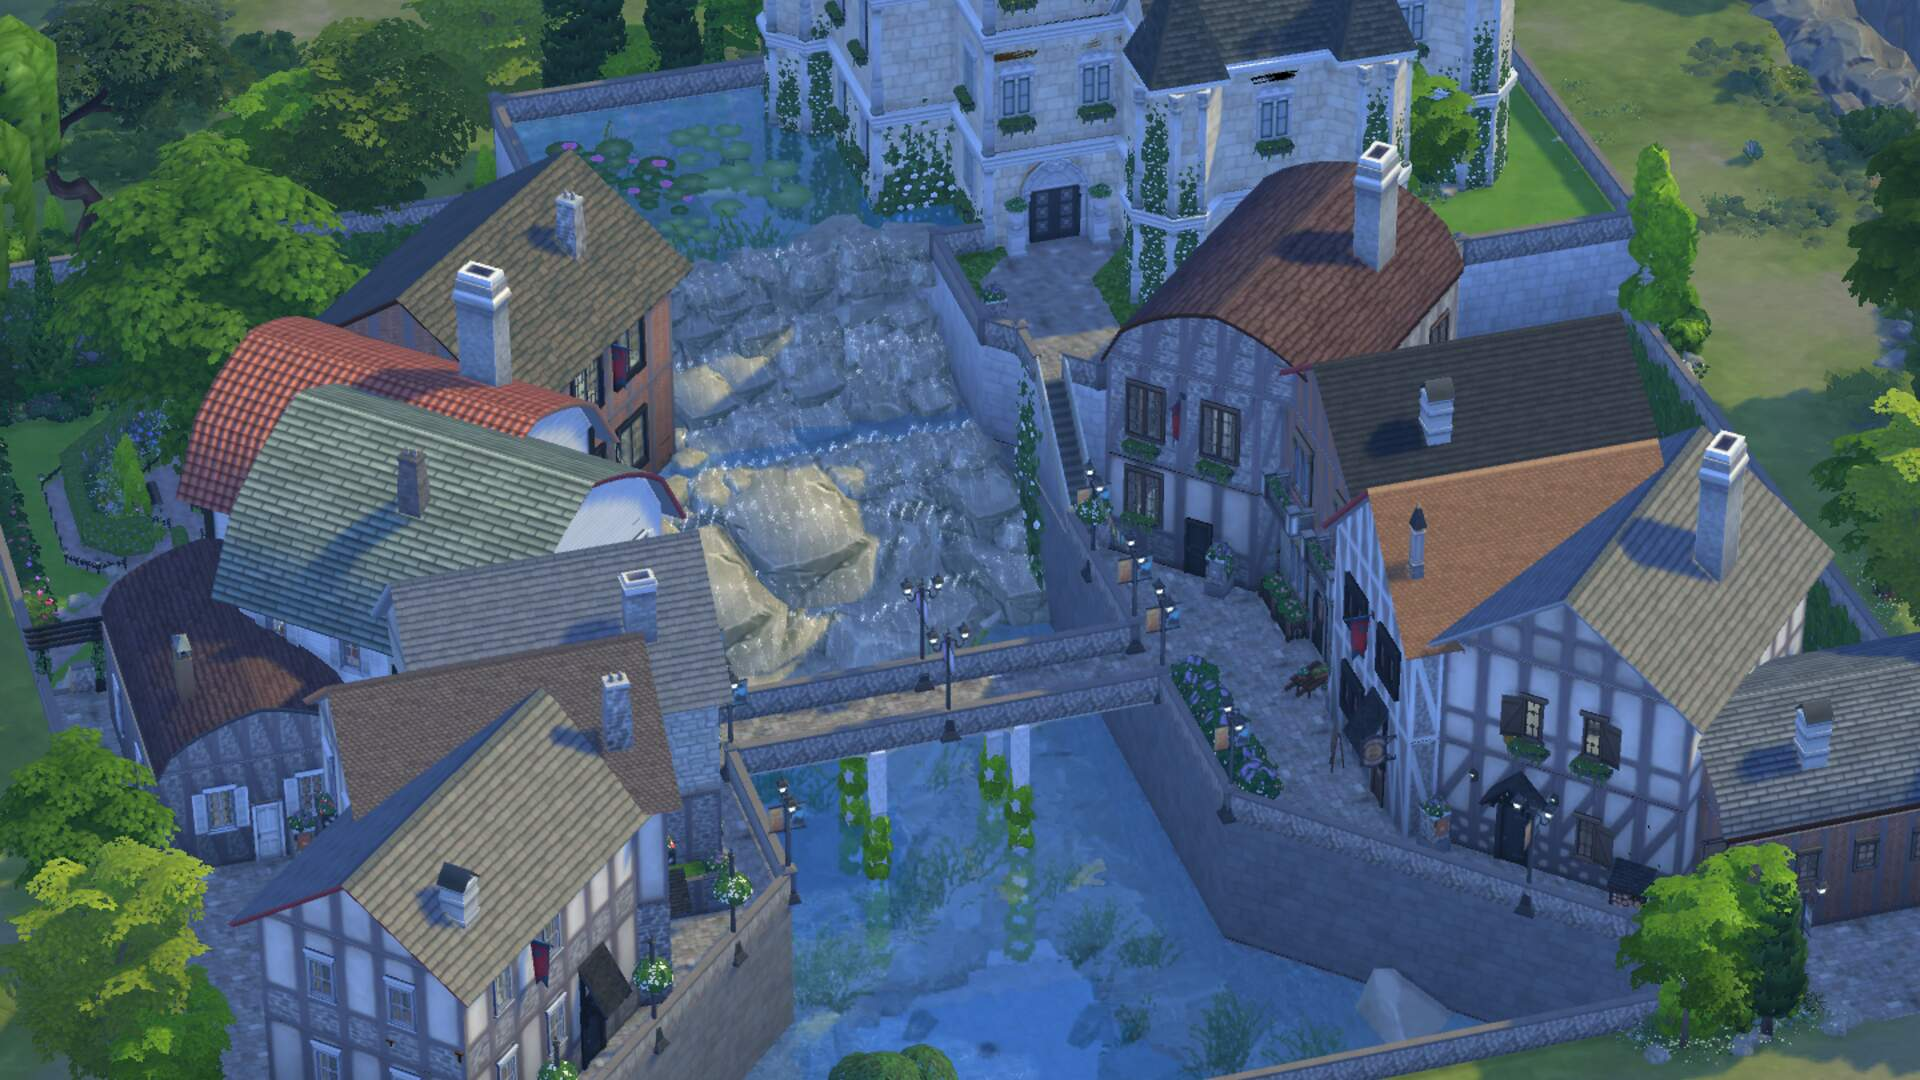 The Sims 4 Cheat Codes: Money, Vampire, Items and More